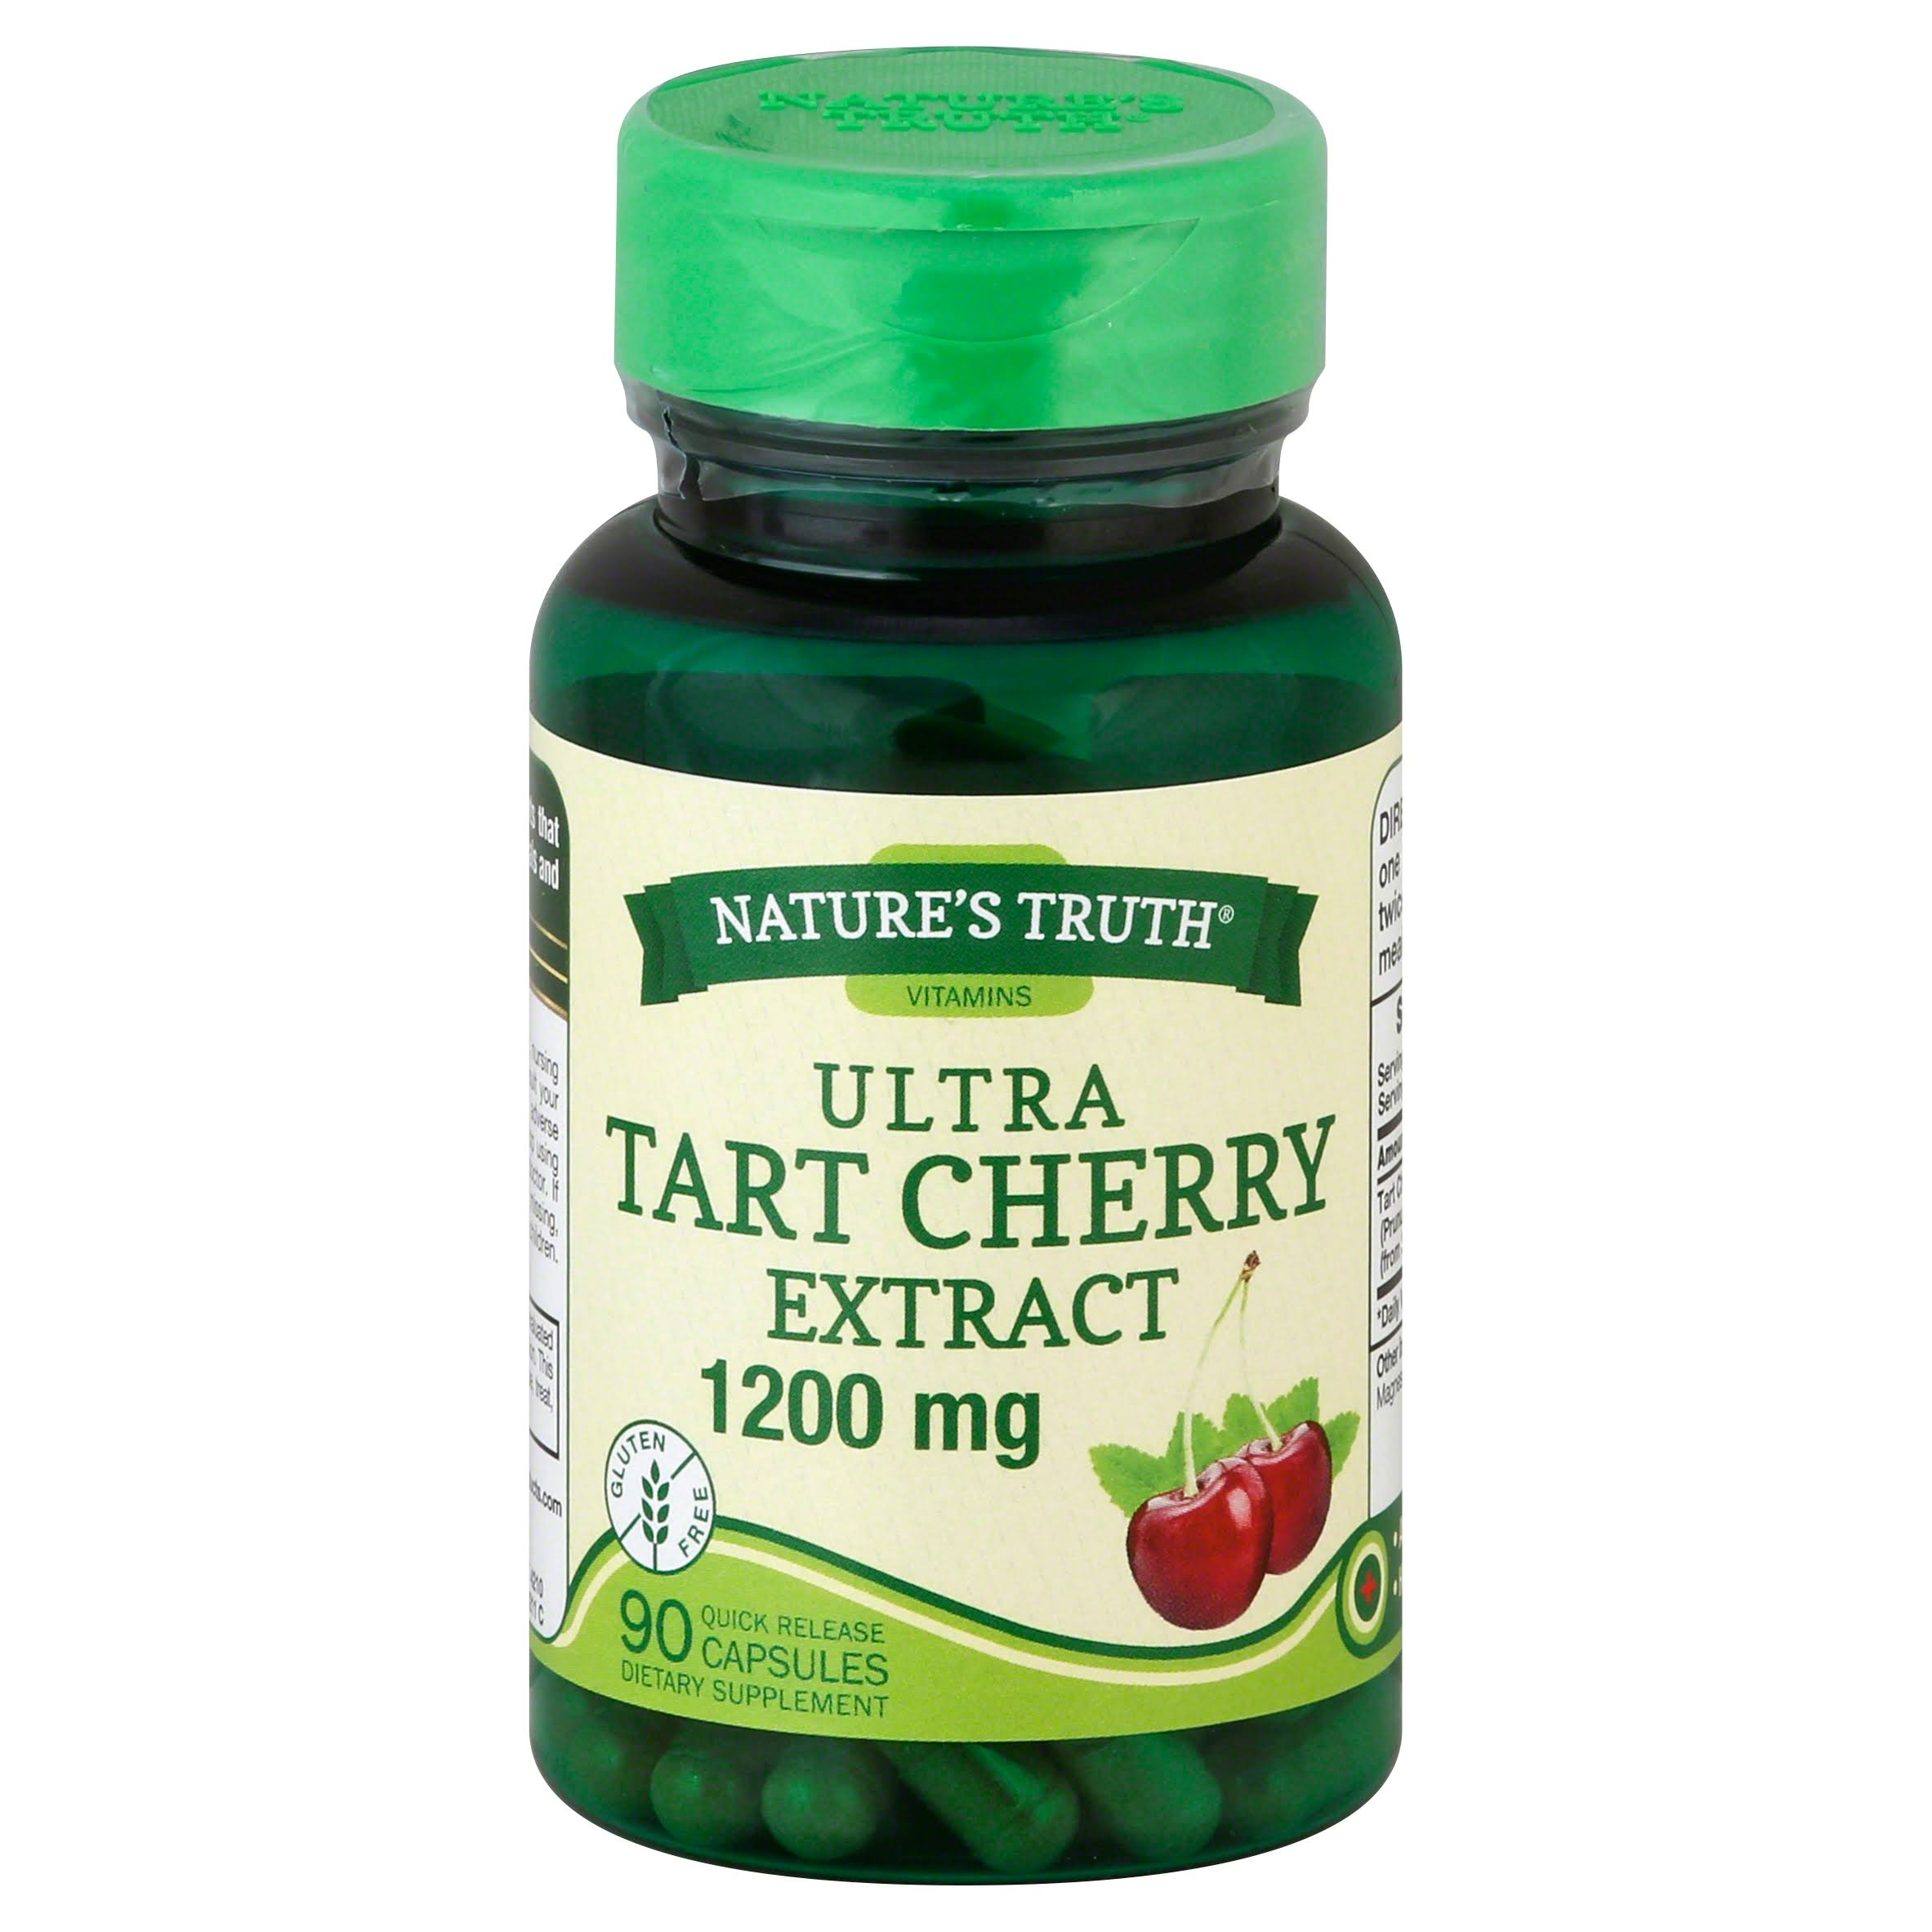 Nature's Truth Ultra Tart Cherry Extract Dietary Supplement - 1200mg, 90ct